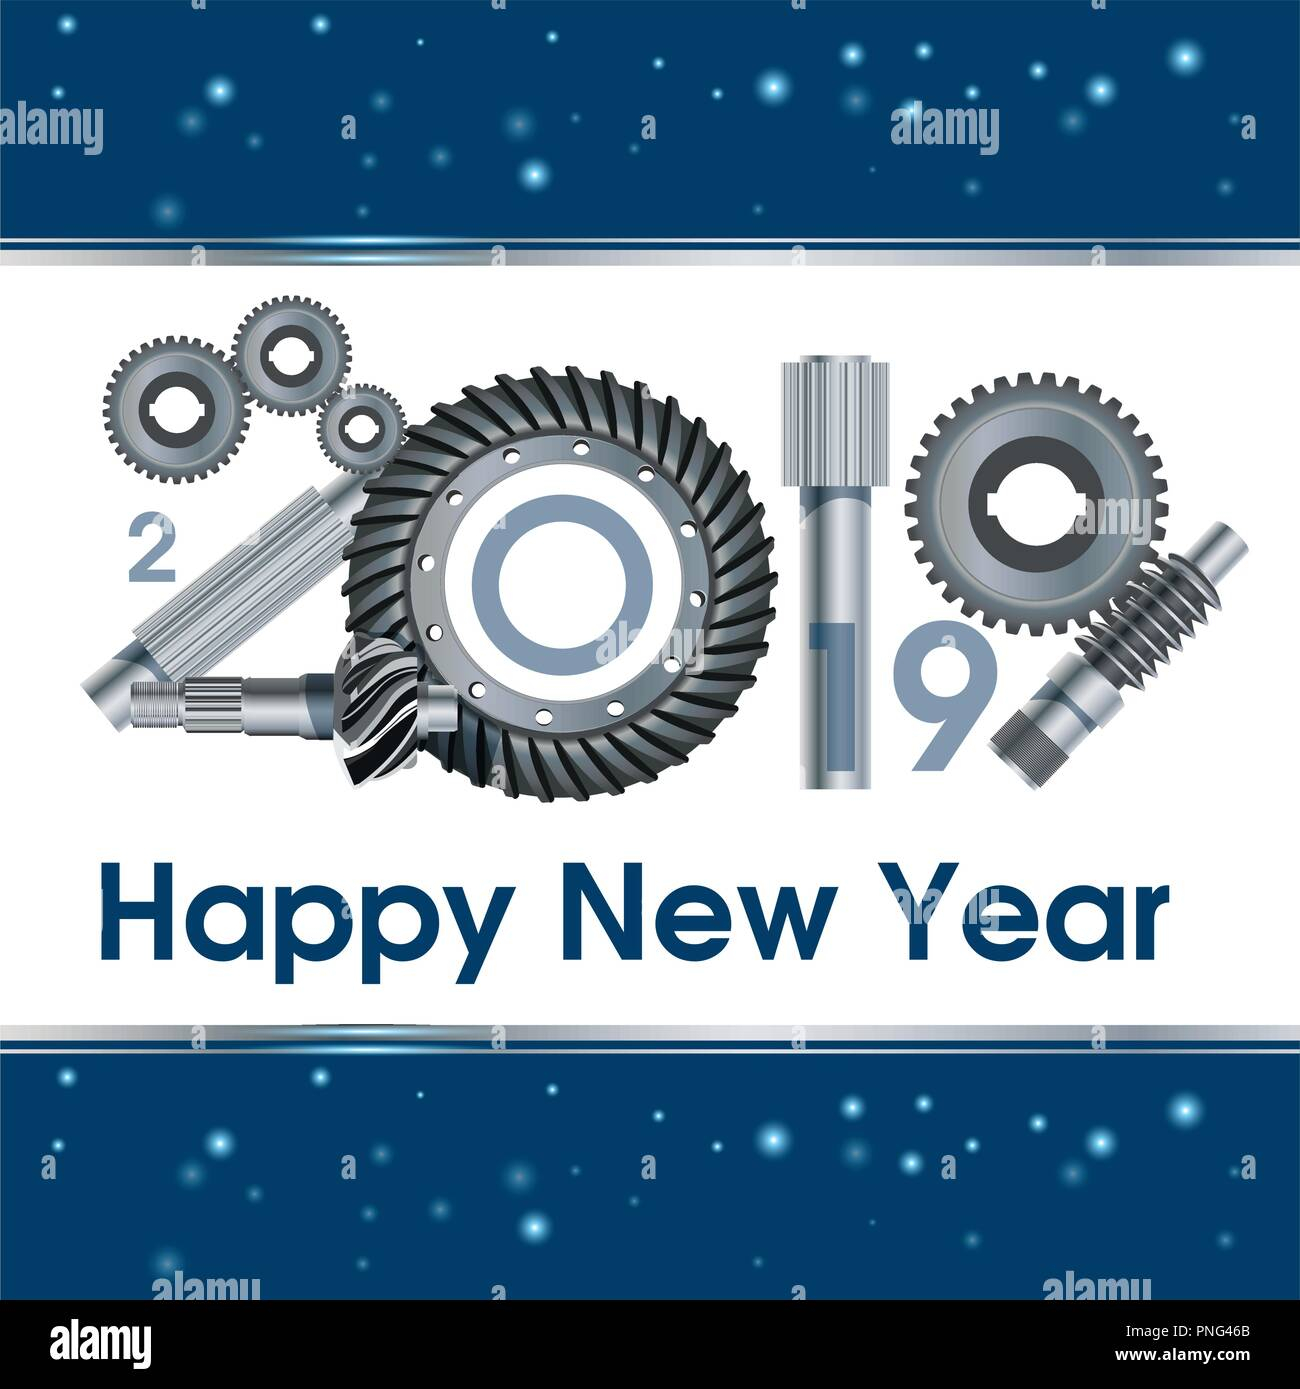 2019 years anniversary industry gear - illustration. New Year s greetings. Poster, banner. - Stock Vector